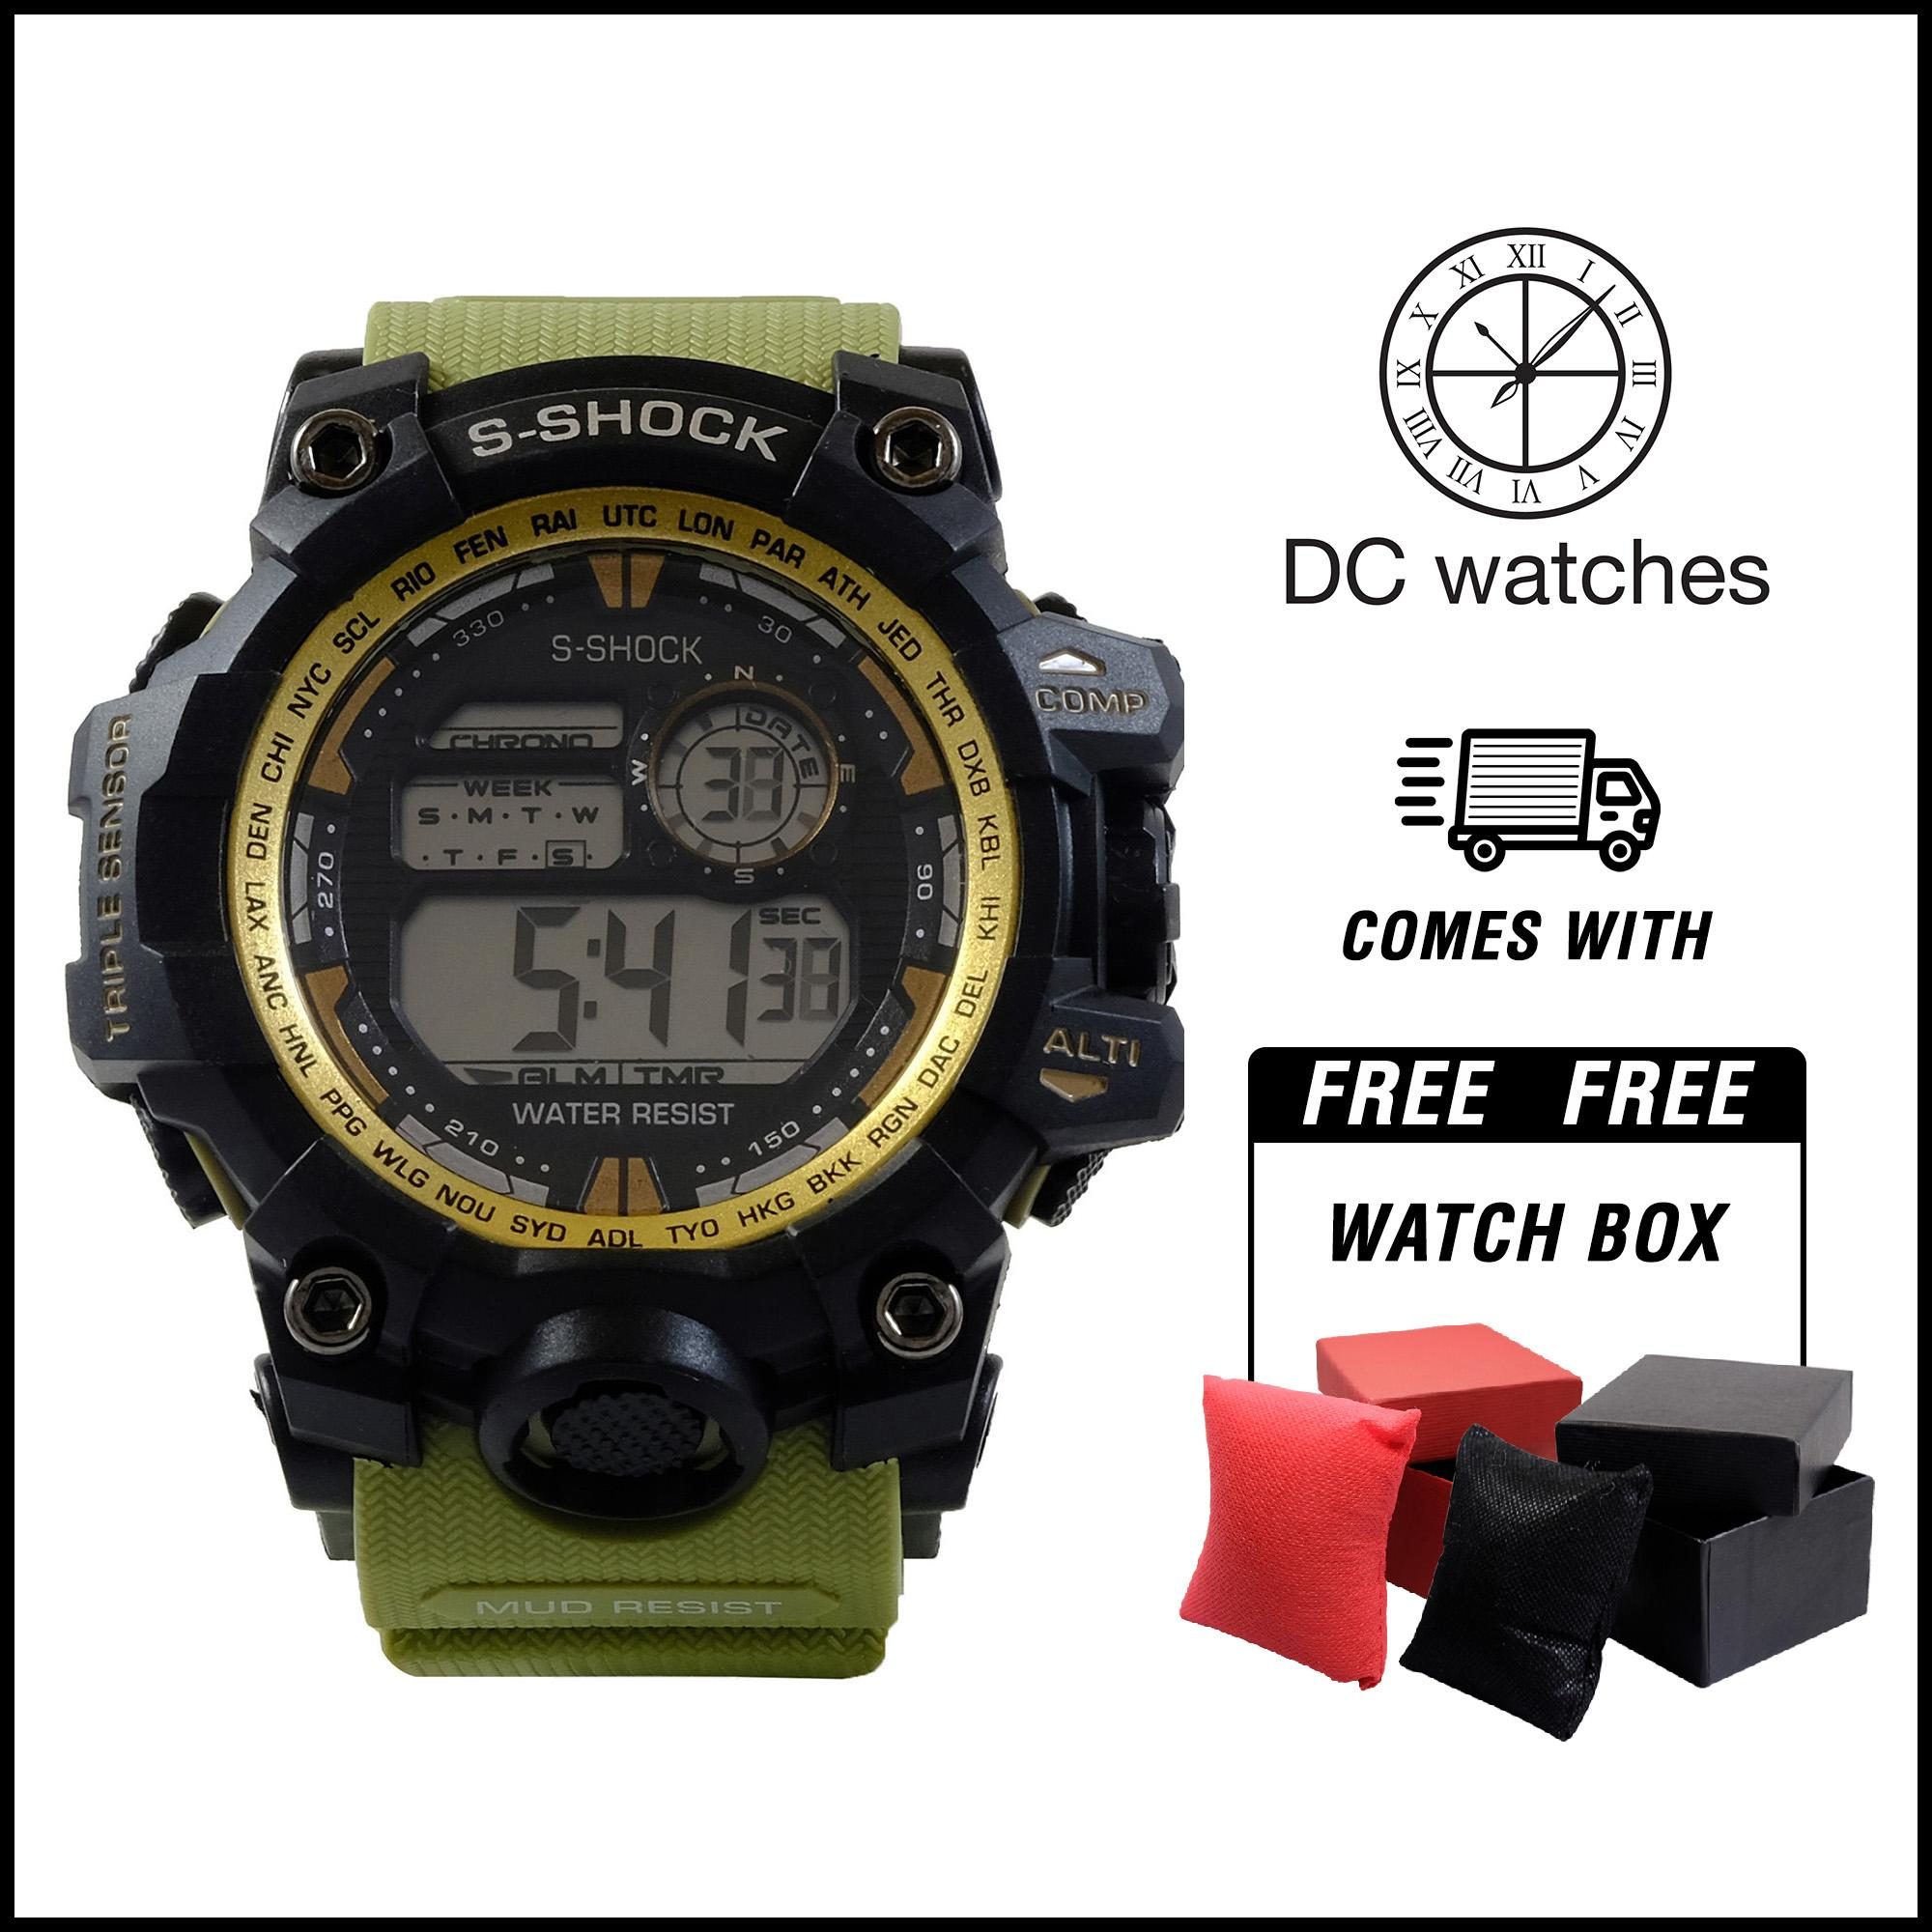 fc306db755 DC Watches S-shock World Time 9977 WATERPROOF watch for men watch for women  watches